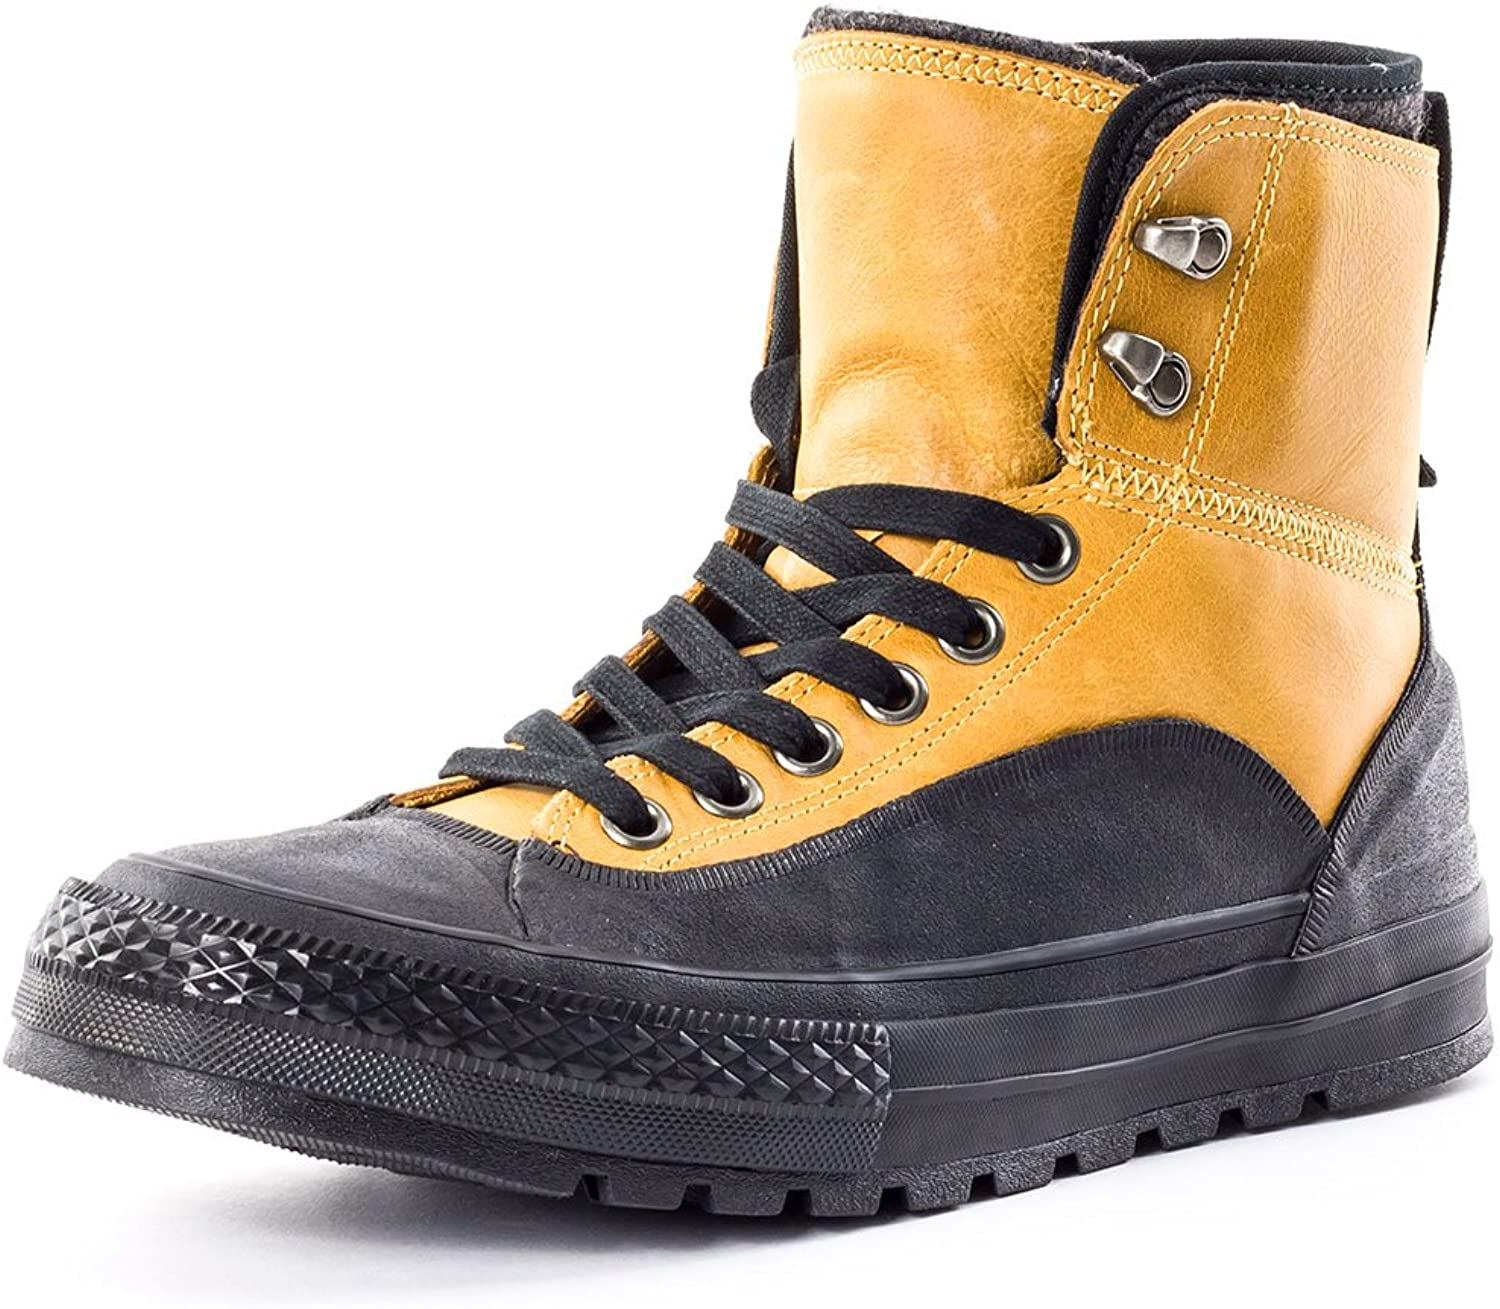 Converse Unisex Chuck Taylor All Star Hi Ant Boot